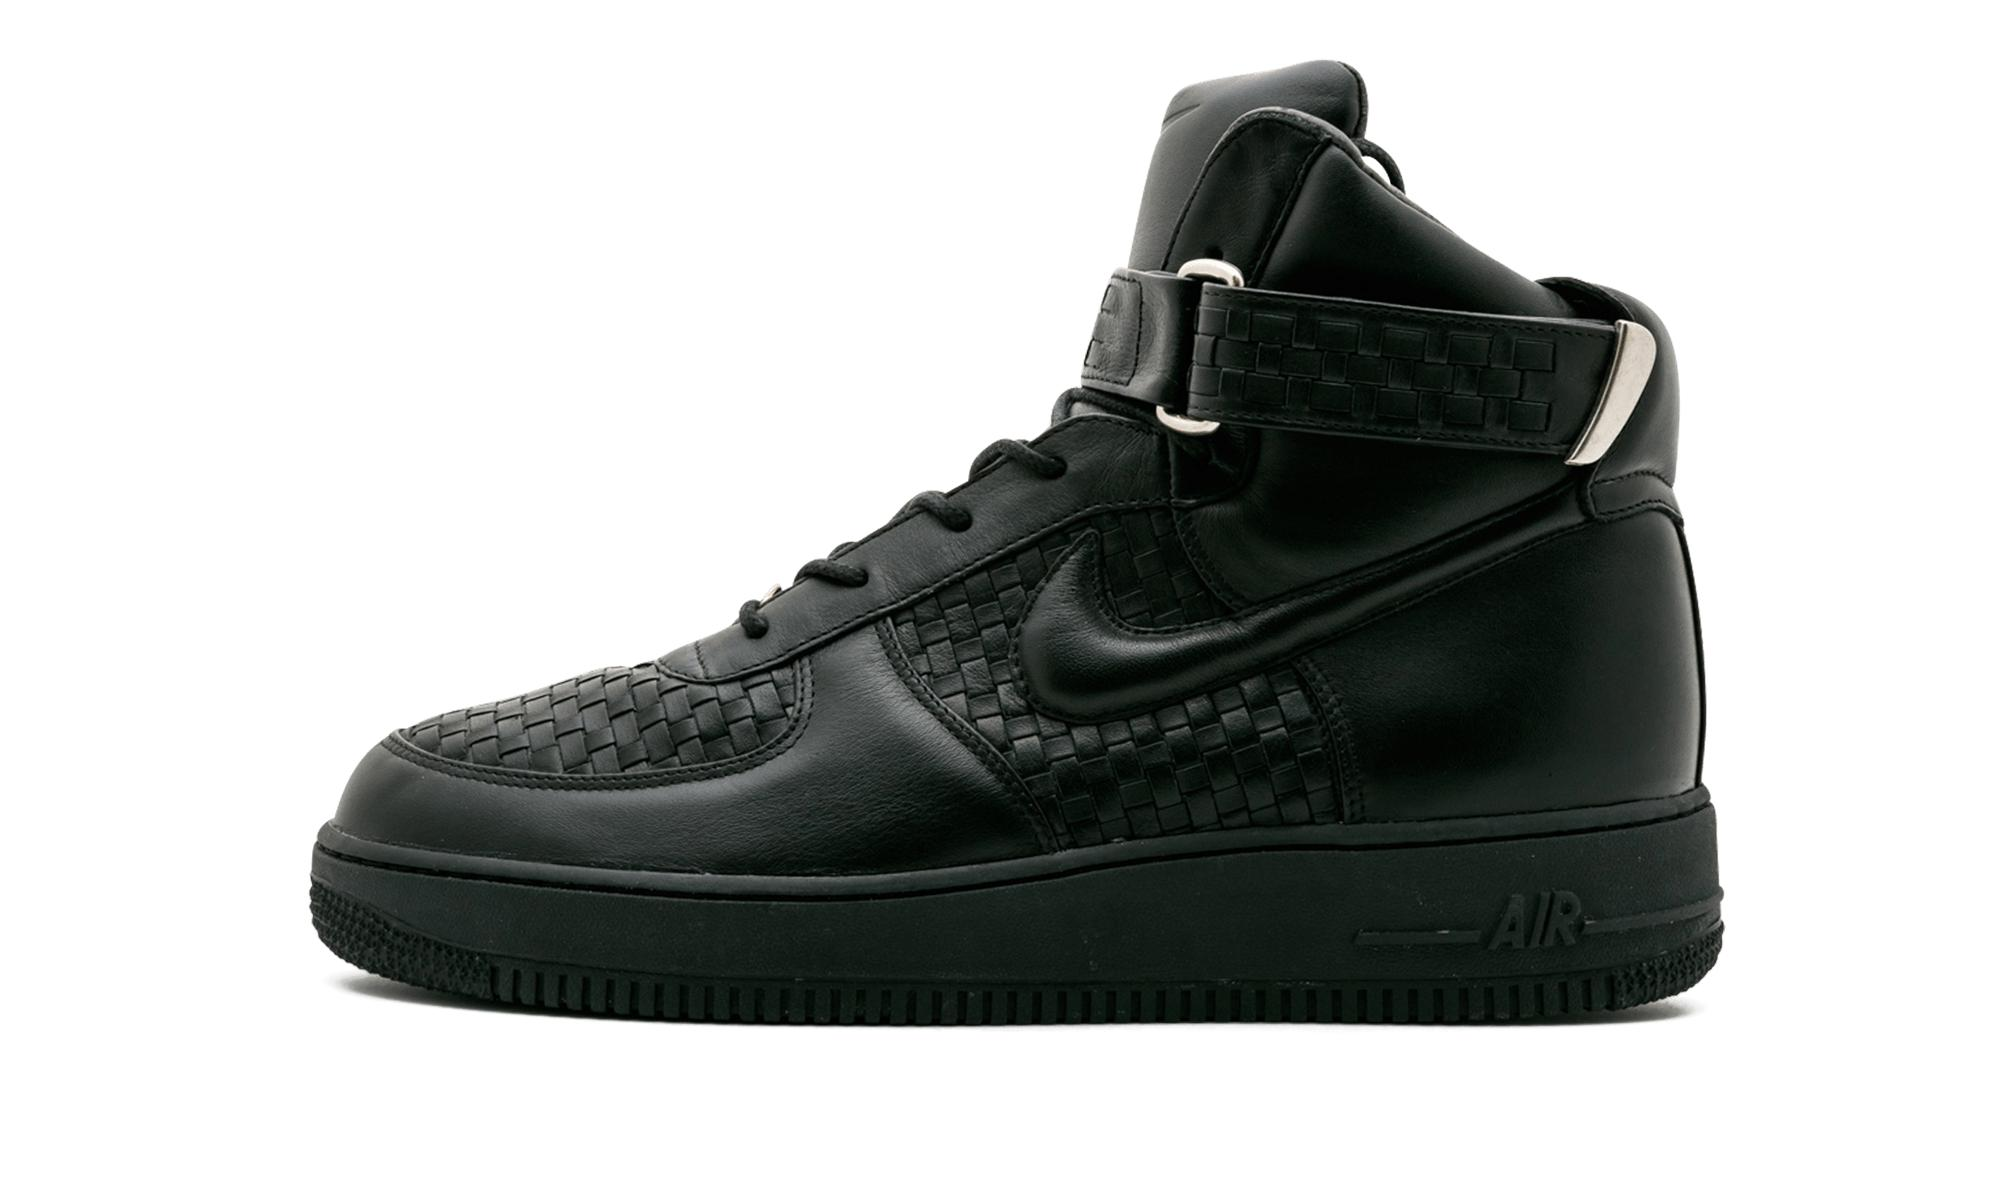 Nike Air Force 1 High Lux 04 In Black For Men Lyst